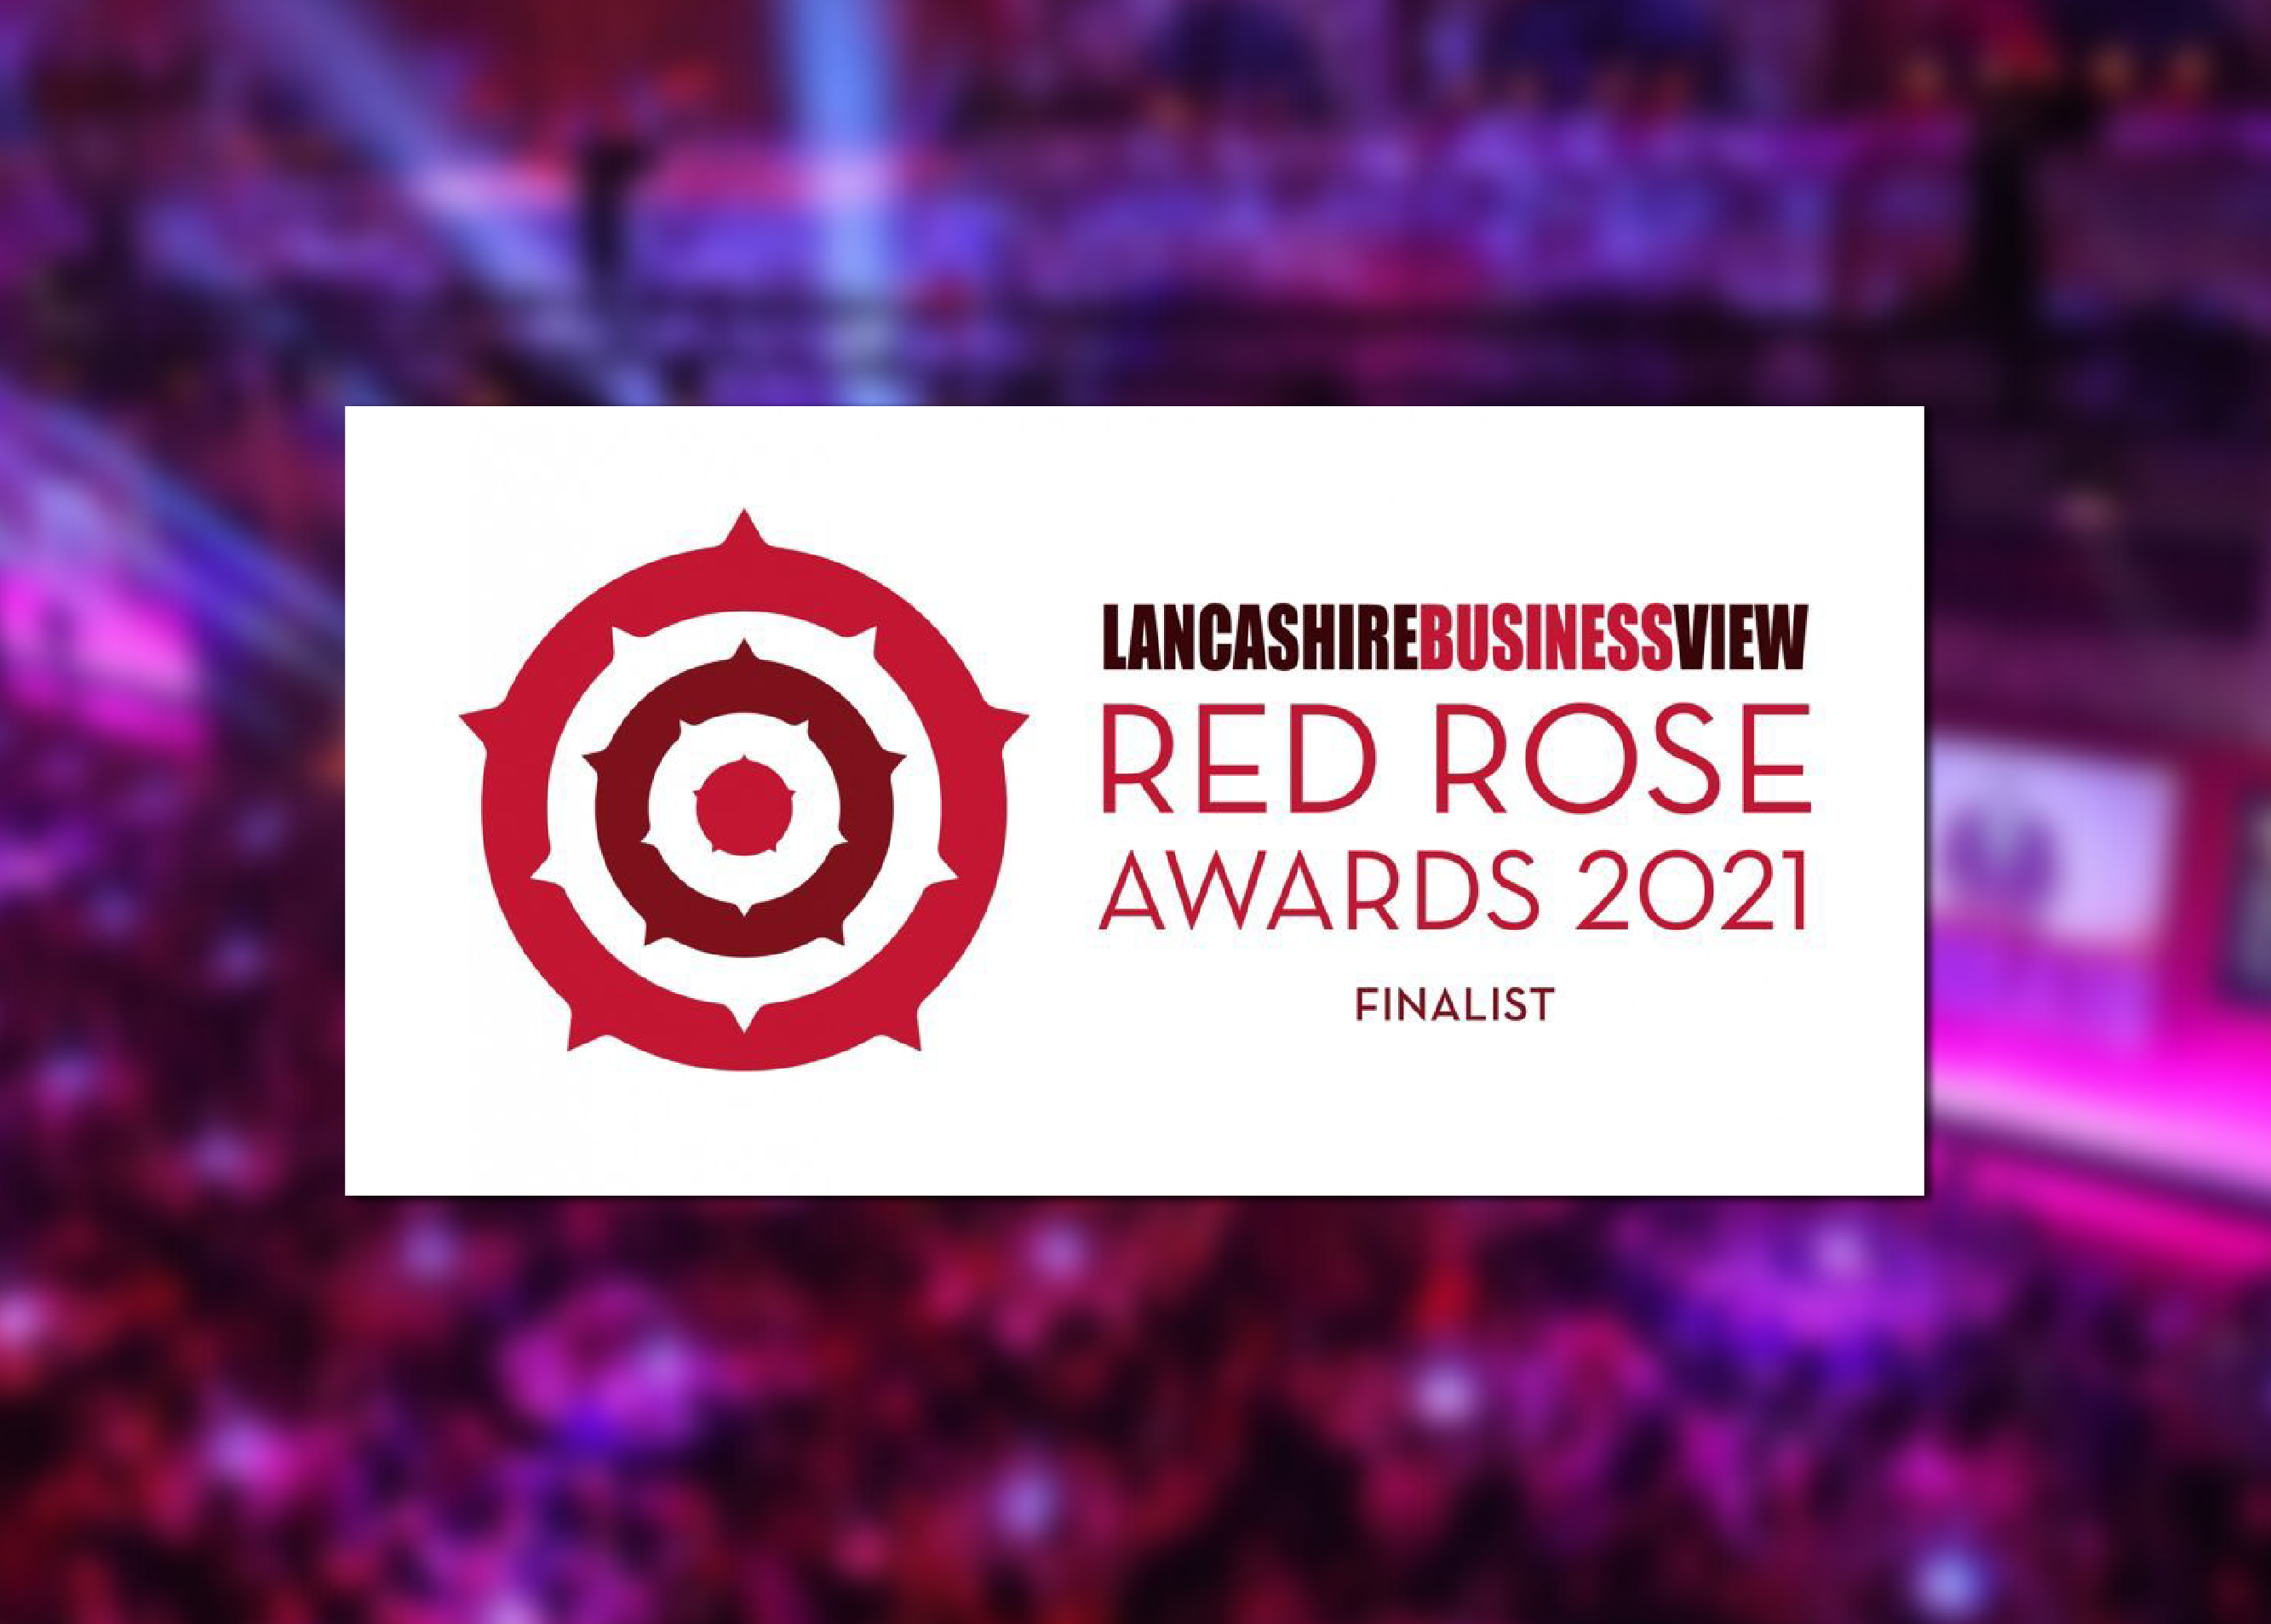 We are nominated for the Resilience Award at the Red Rose Awards 2021